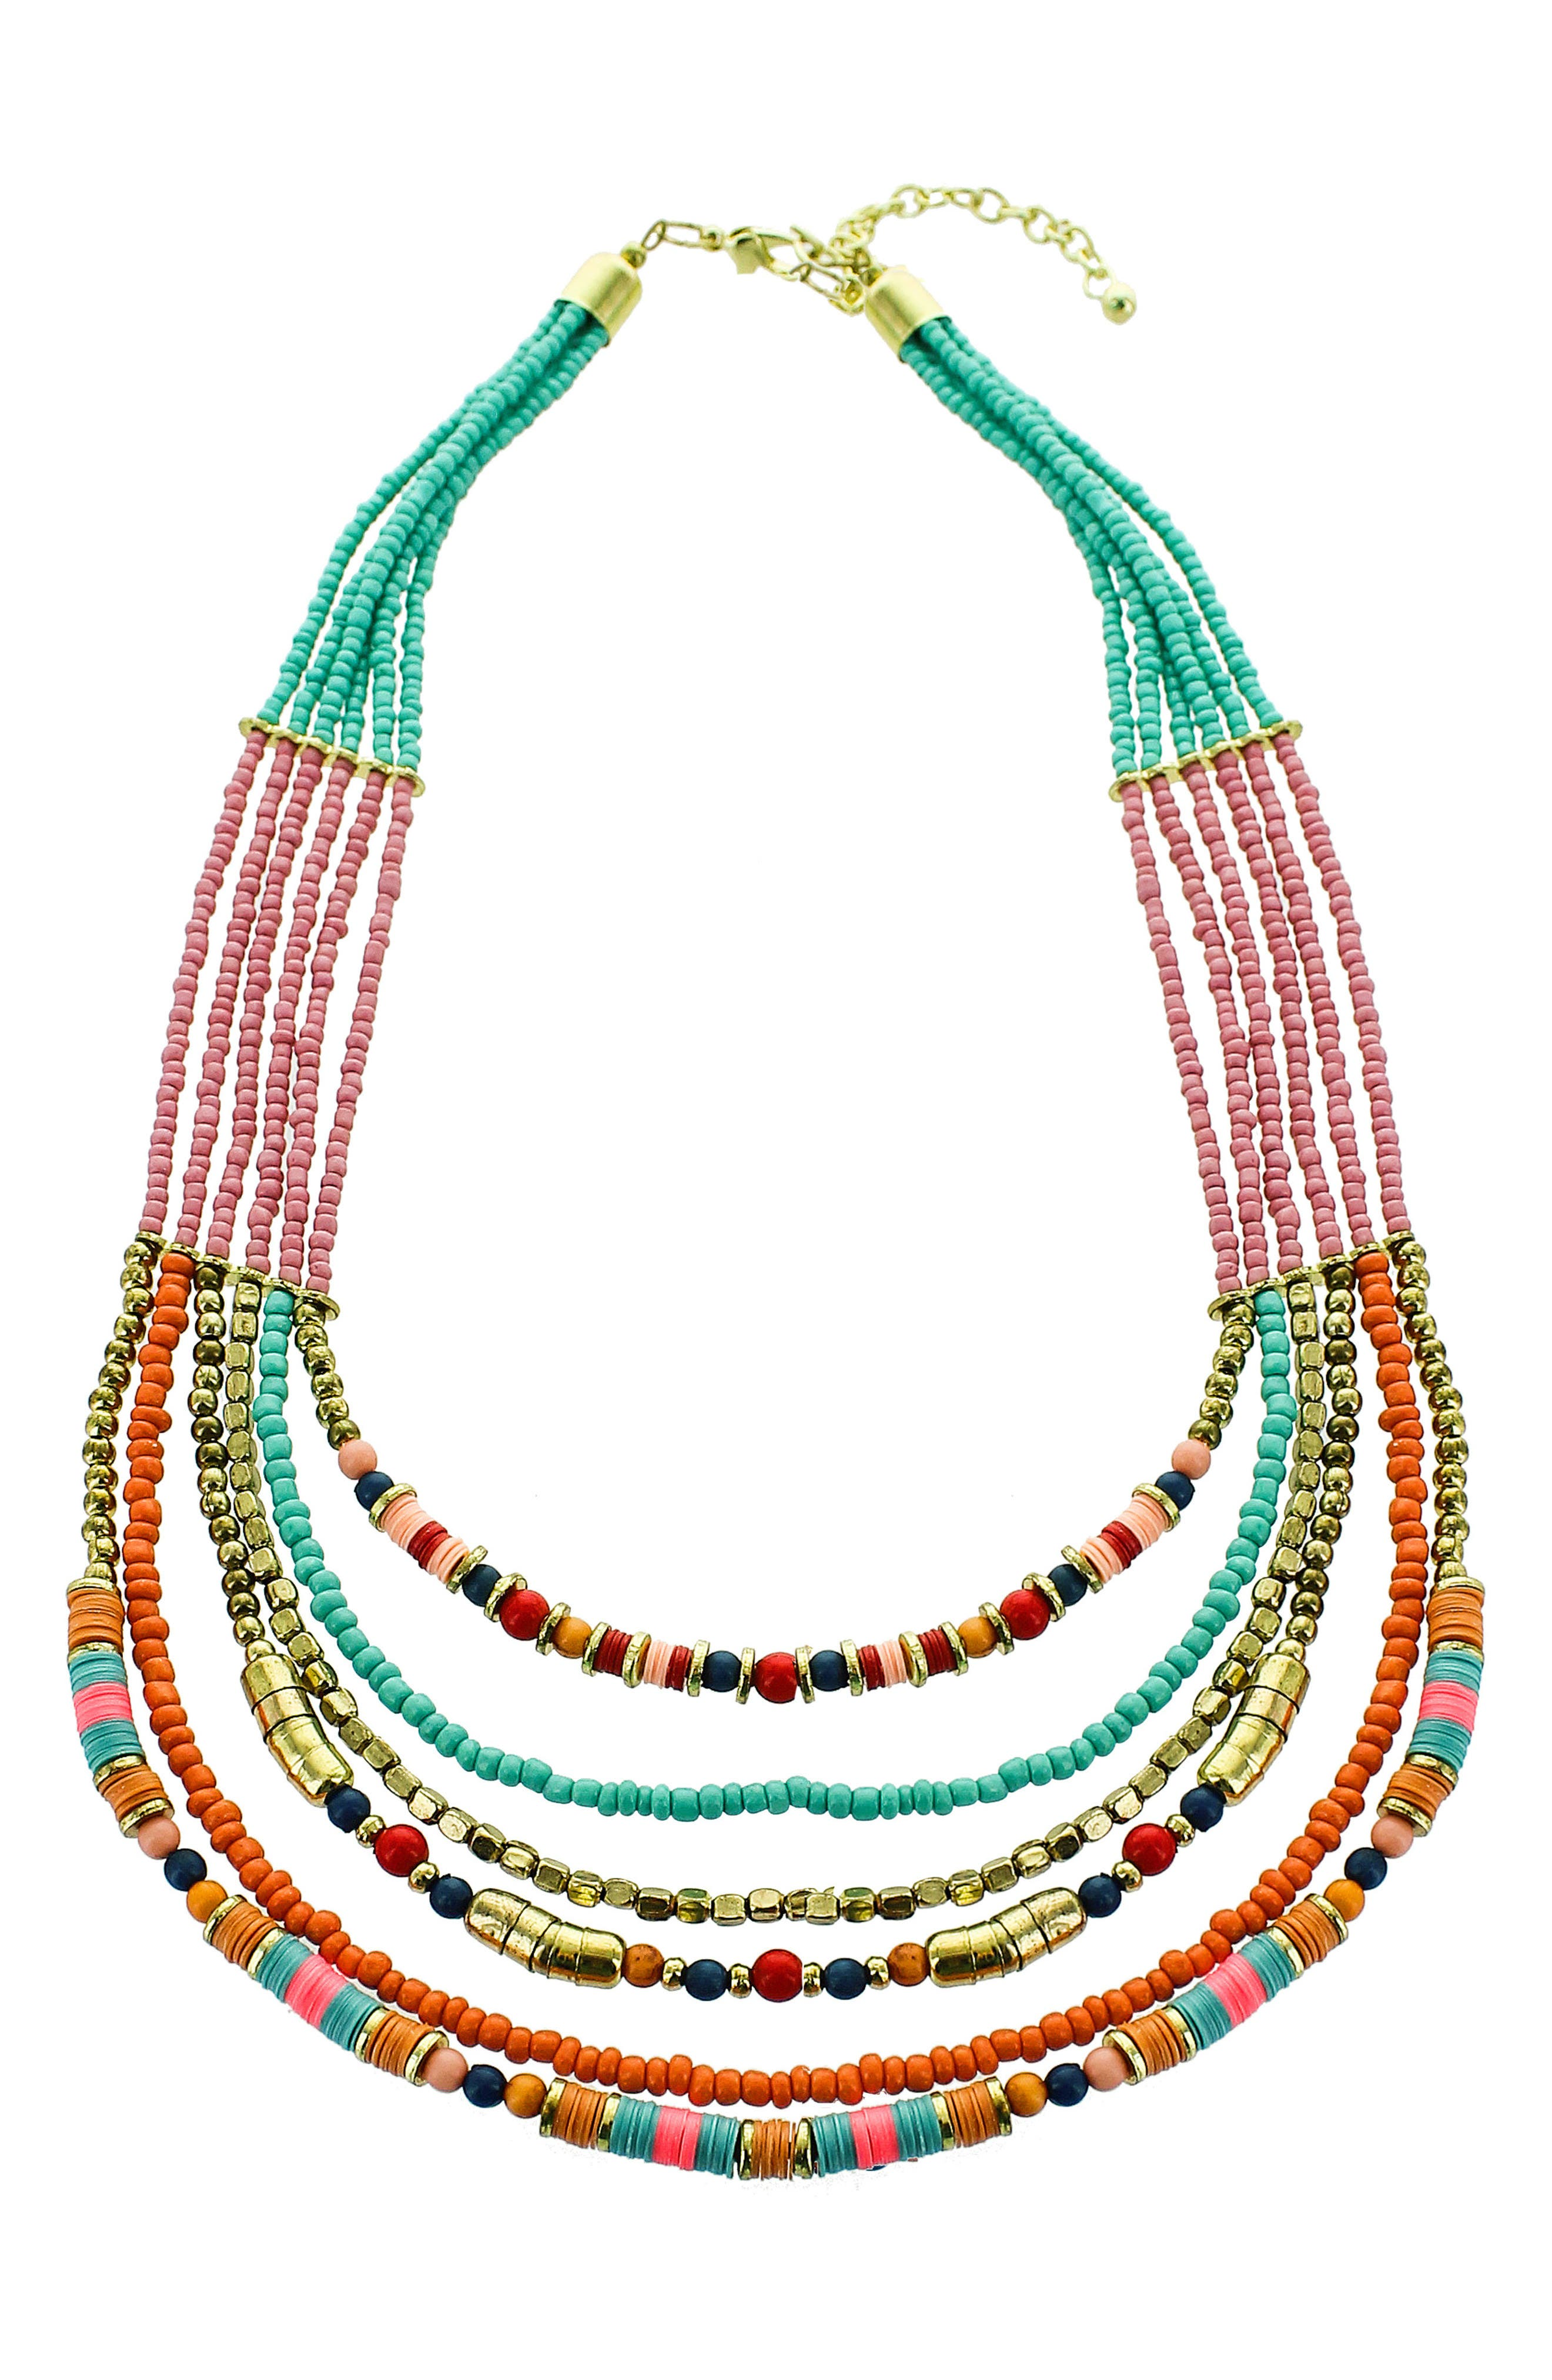 Multistrand Seed Bead Necklace,                         Main,                         color, Turquoise/ Multi